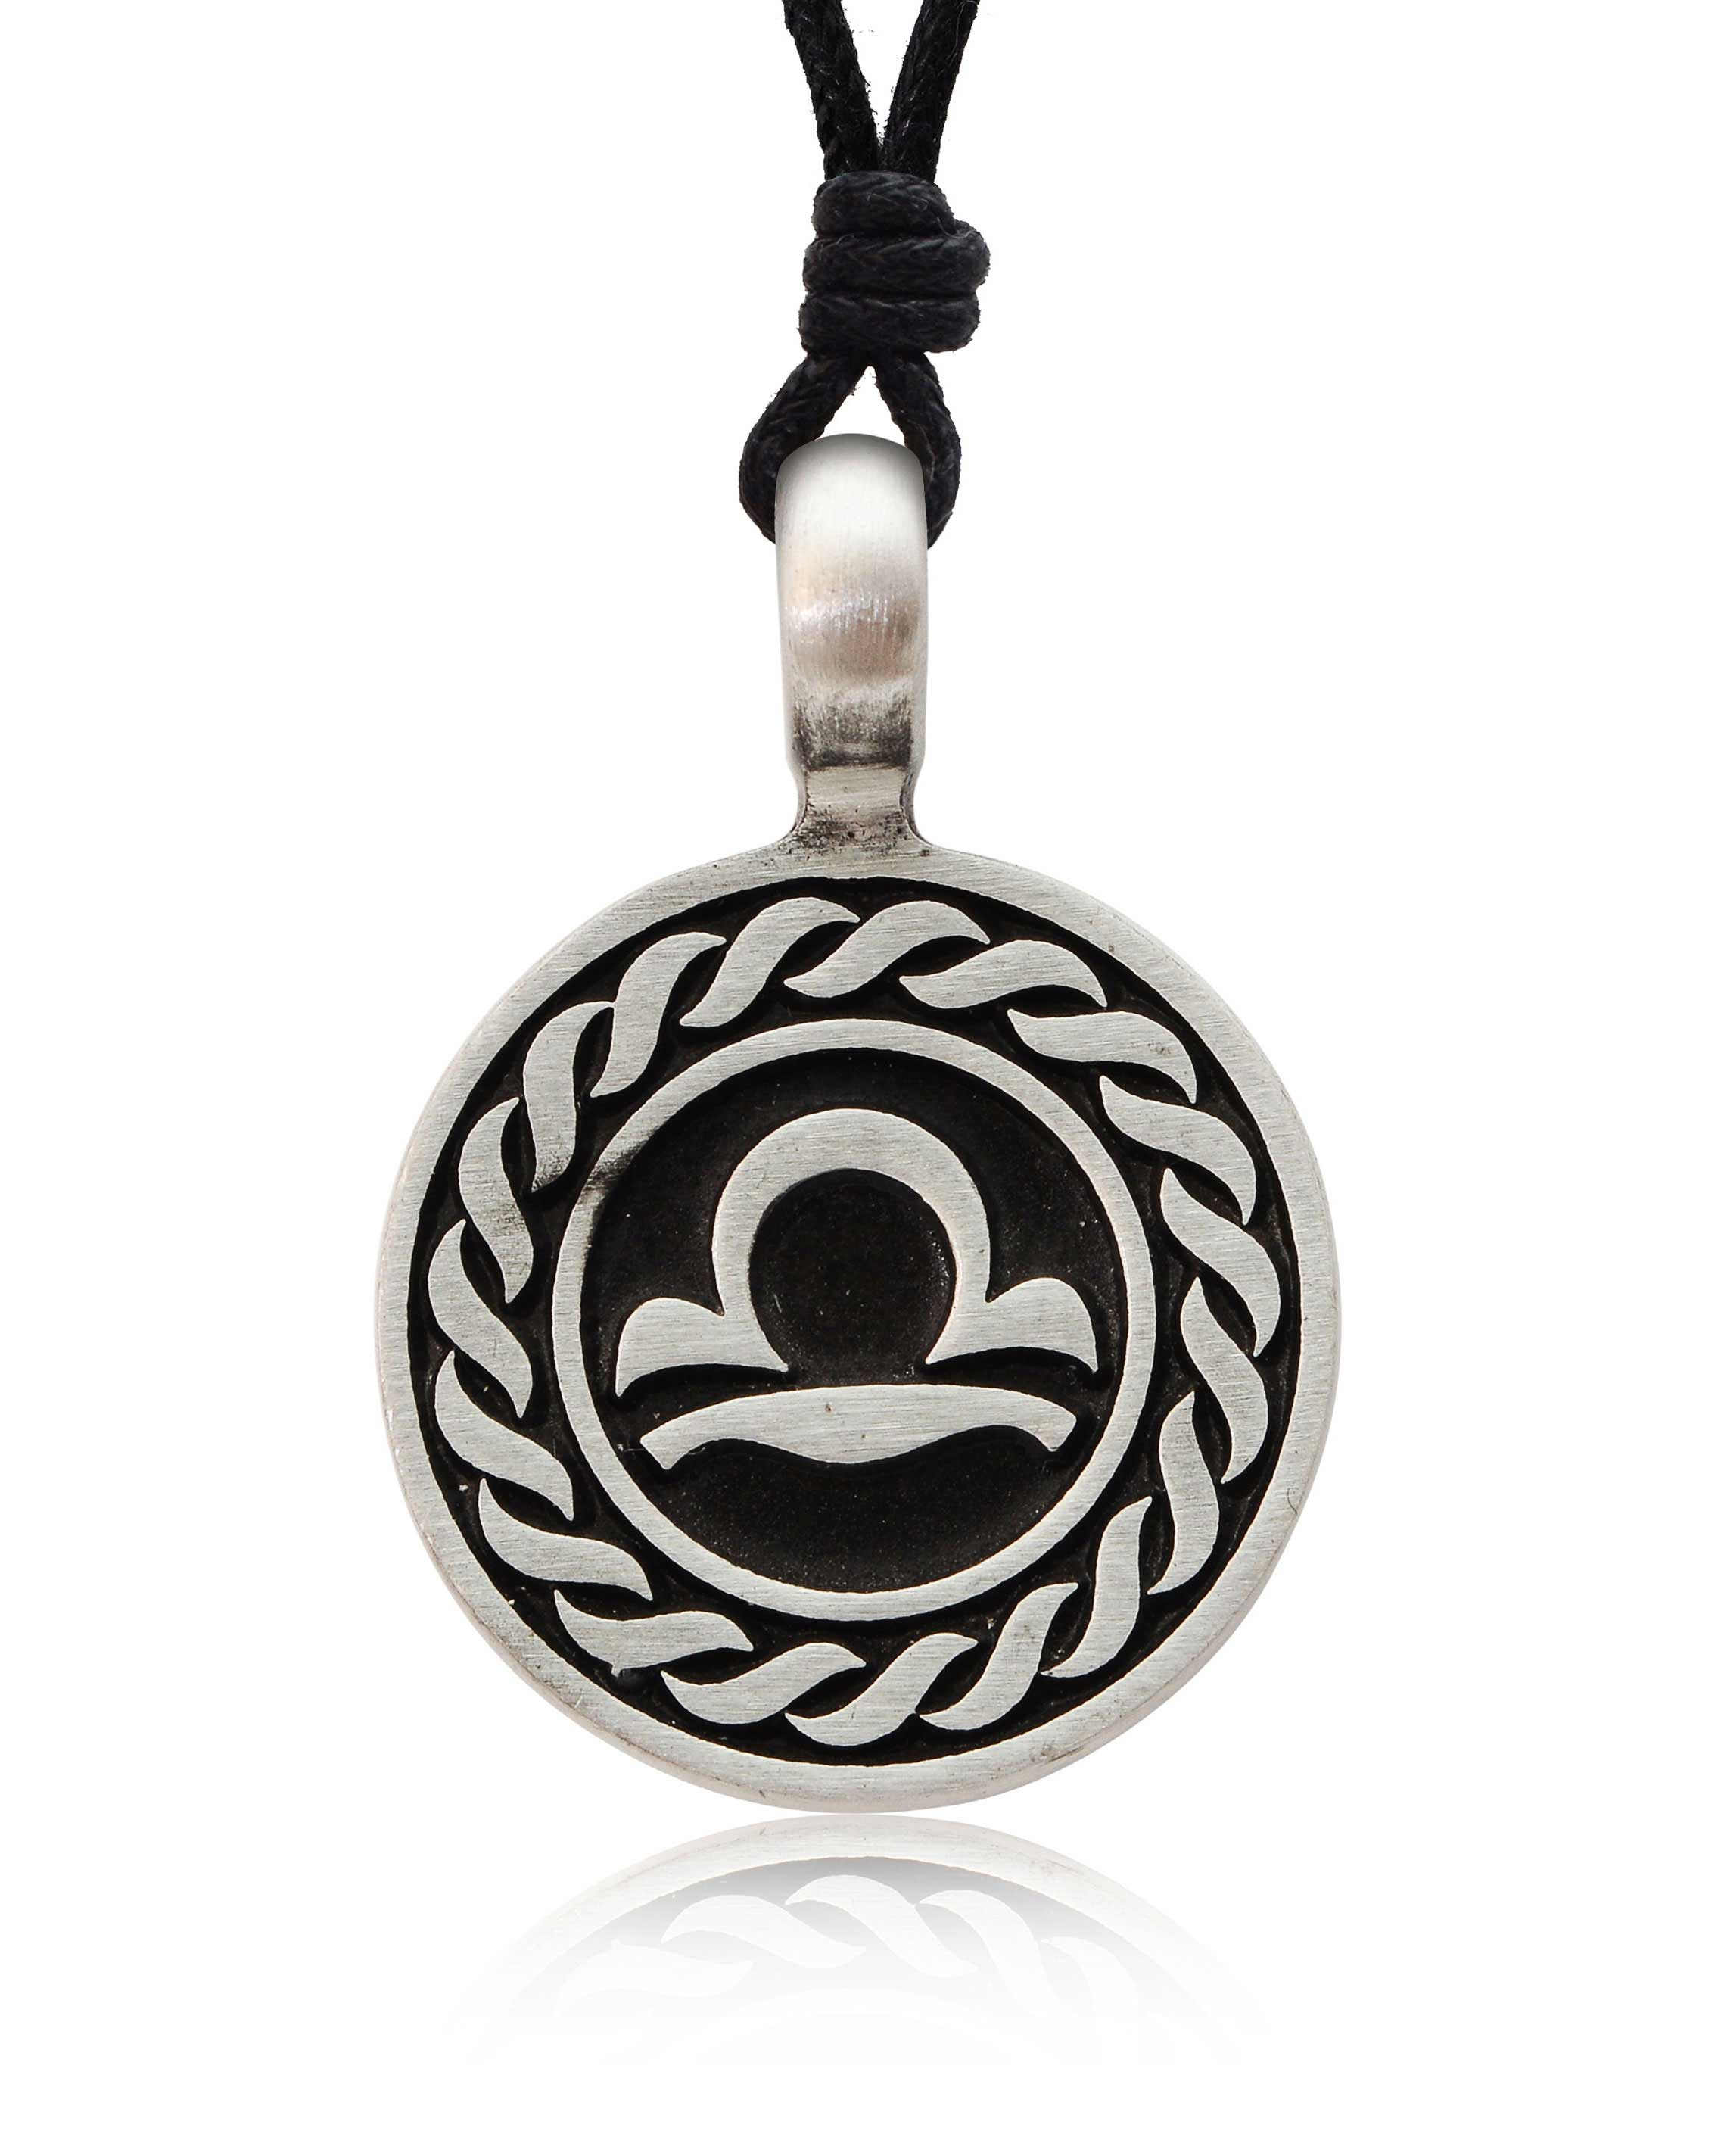 Astrology Sign Horoscope Silver Pewter Charm Necklace ... - photo#29